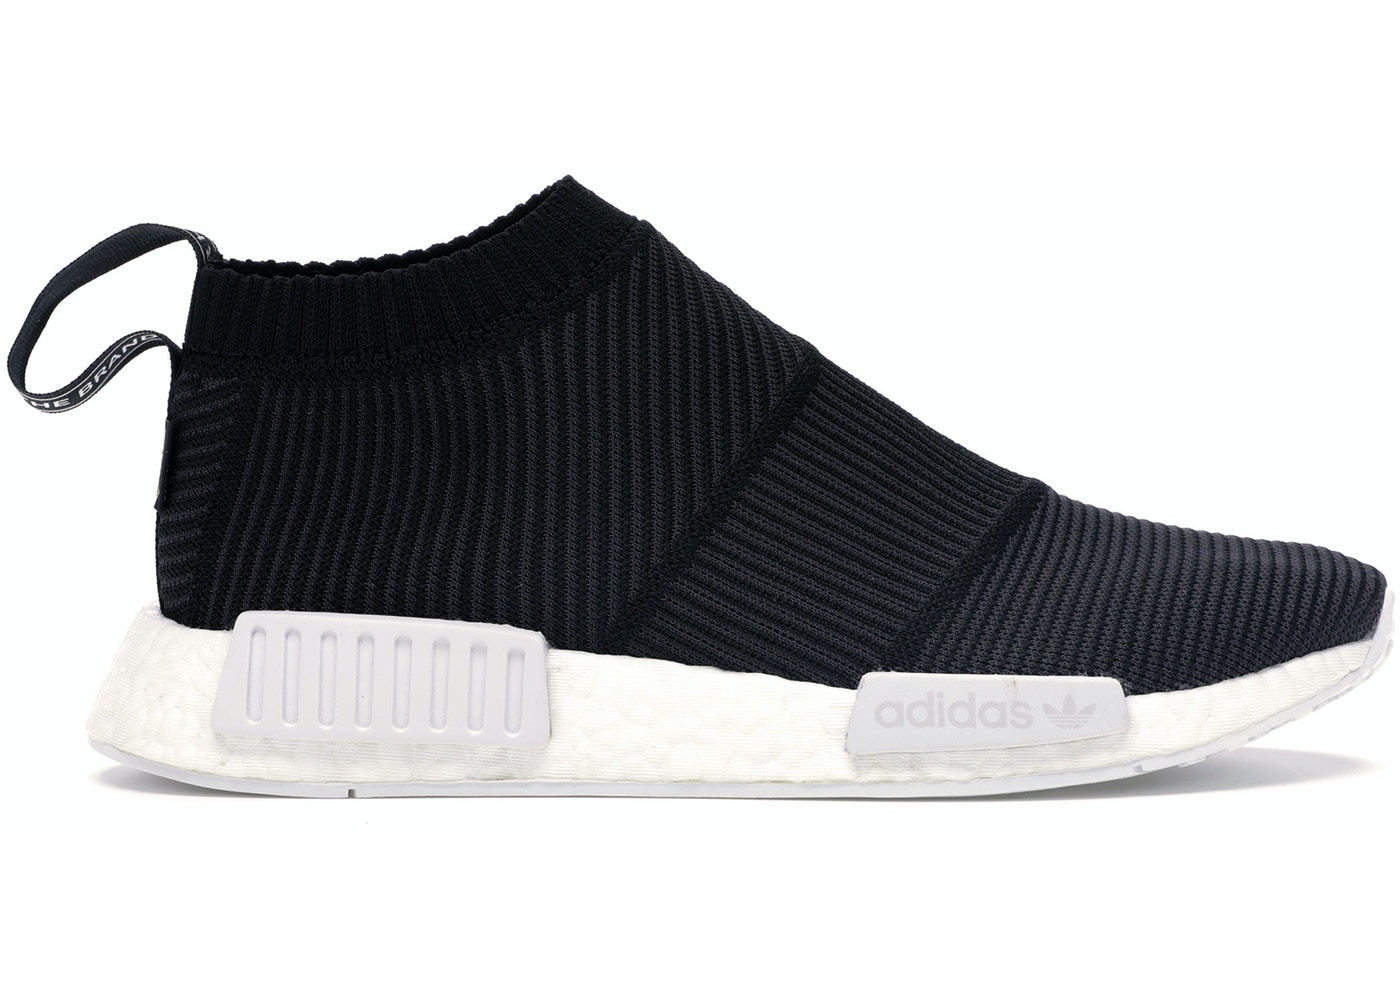 new style 037cb cb8f0 adidas NMD CS1 Shoes - Volatility